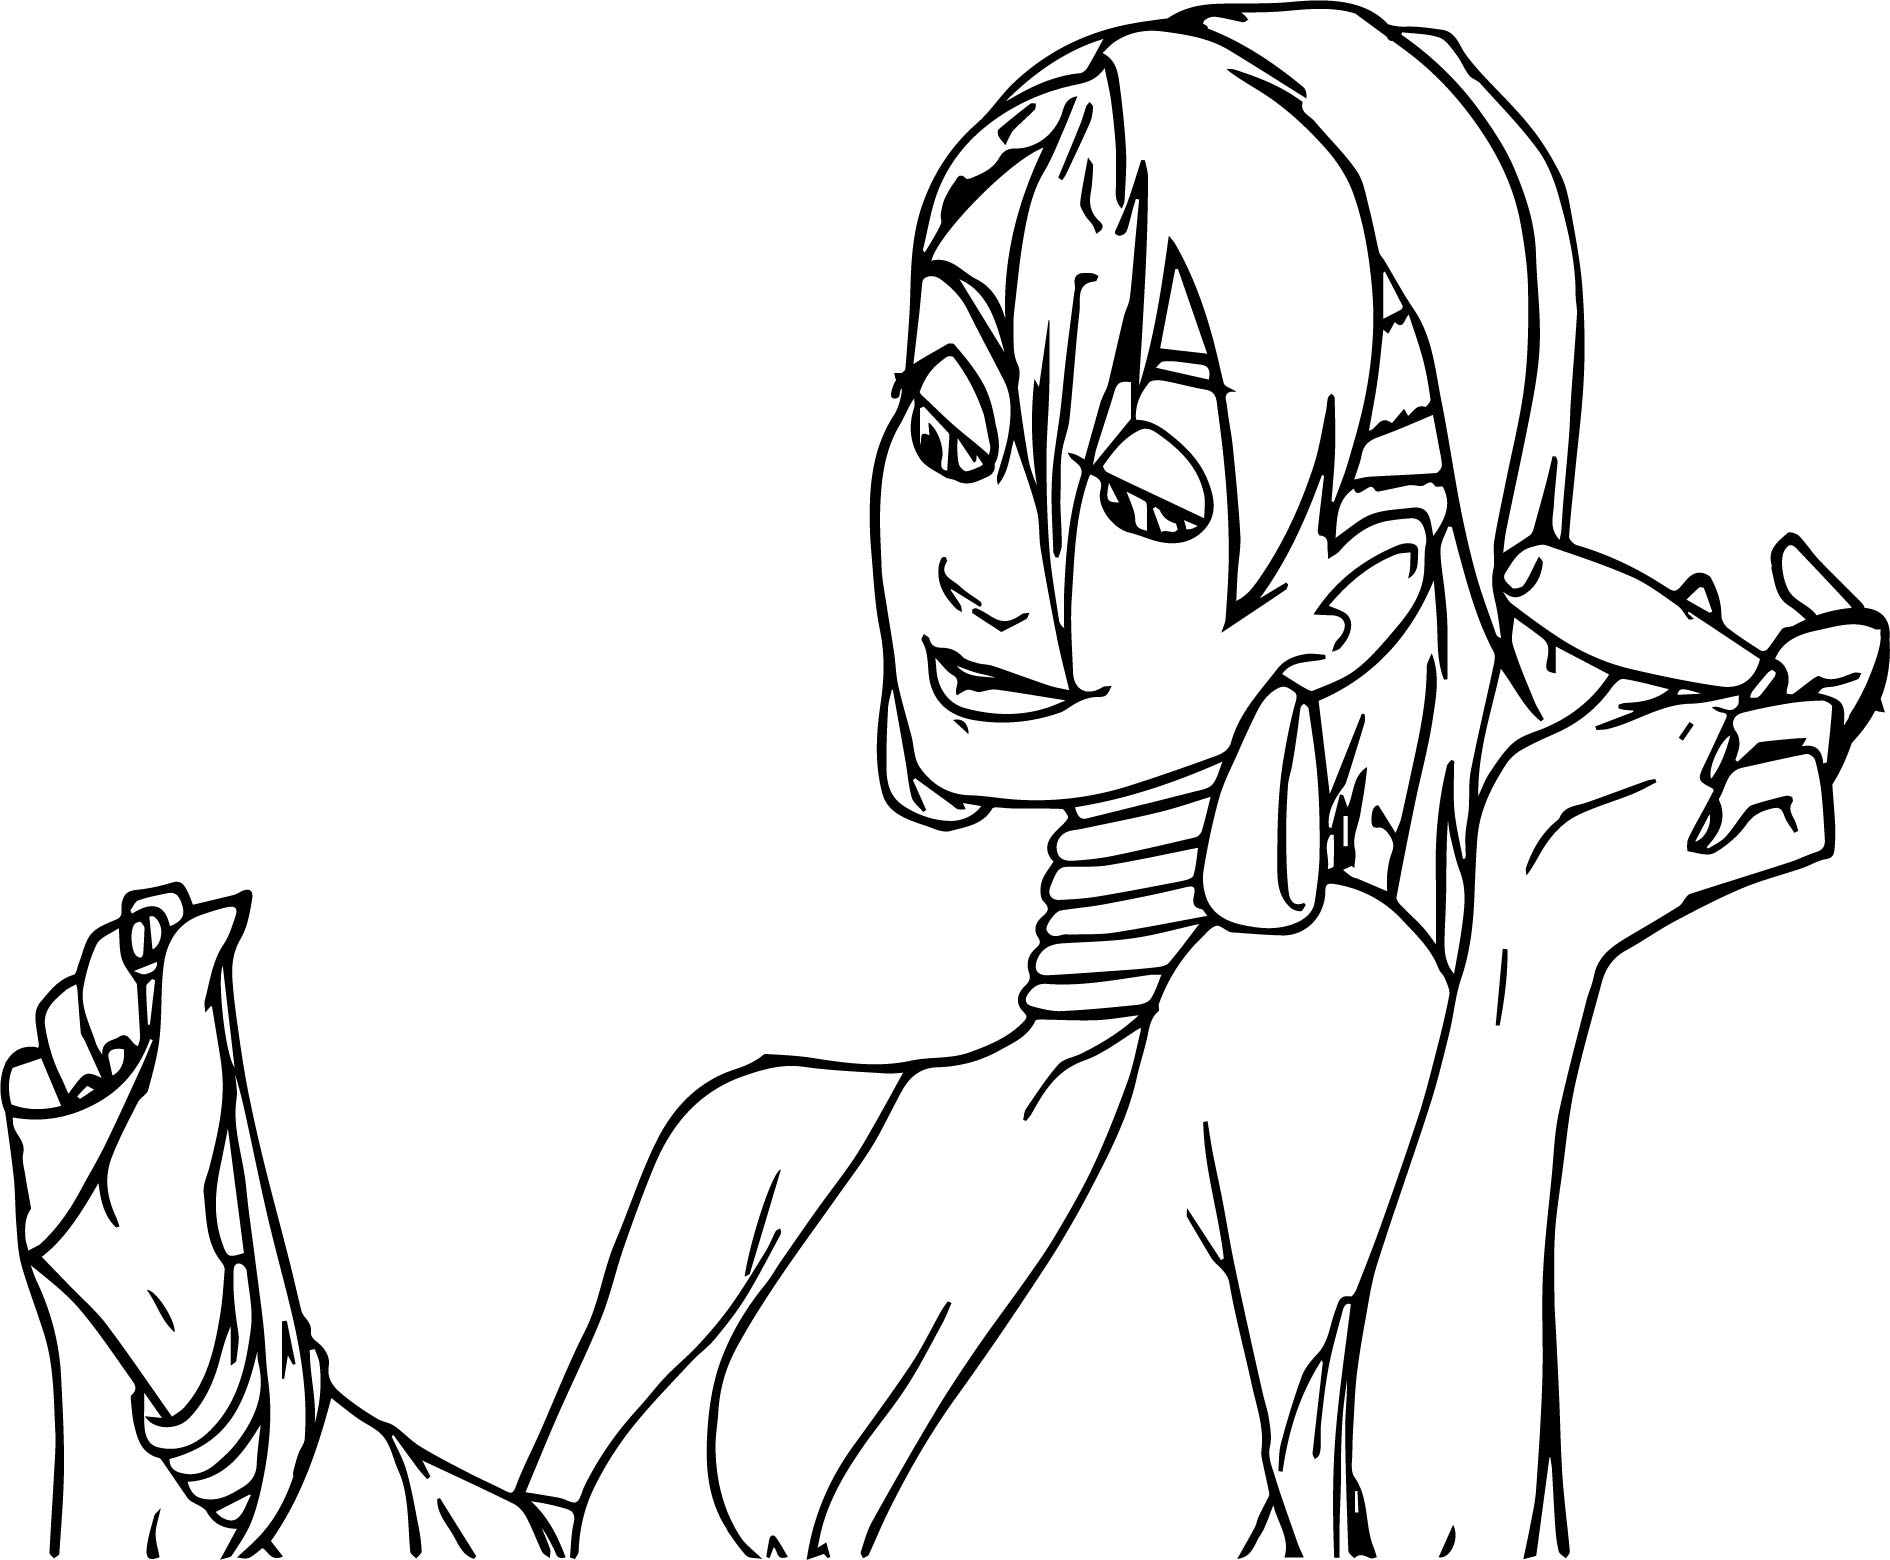 zecora woman make up coloring page wecoloringpage